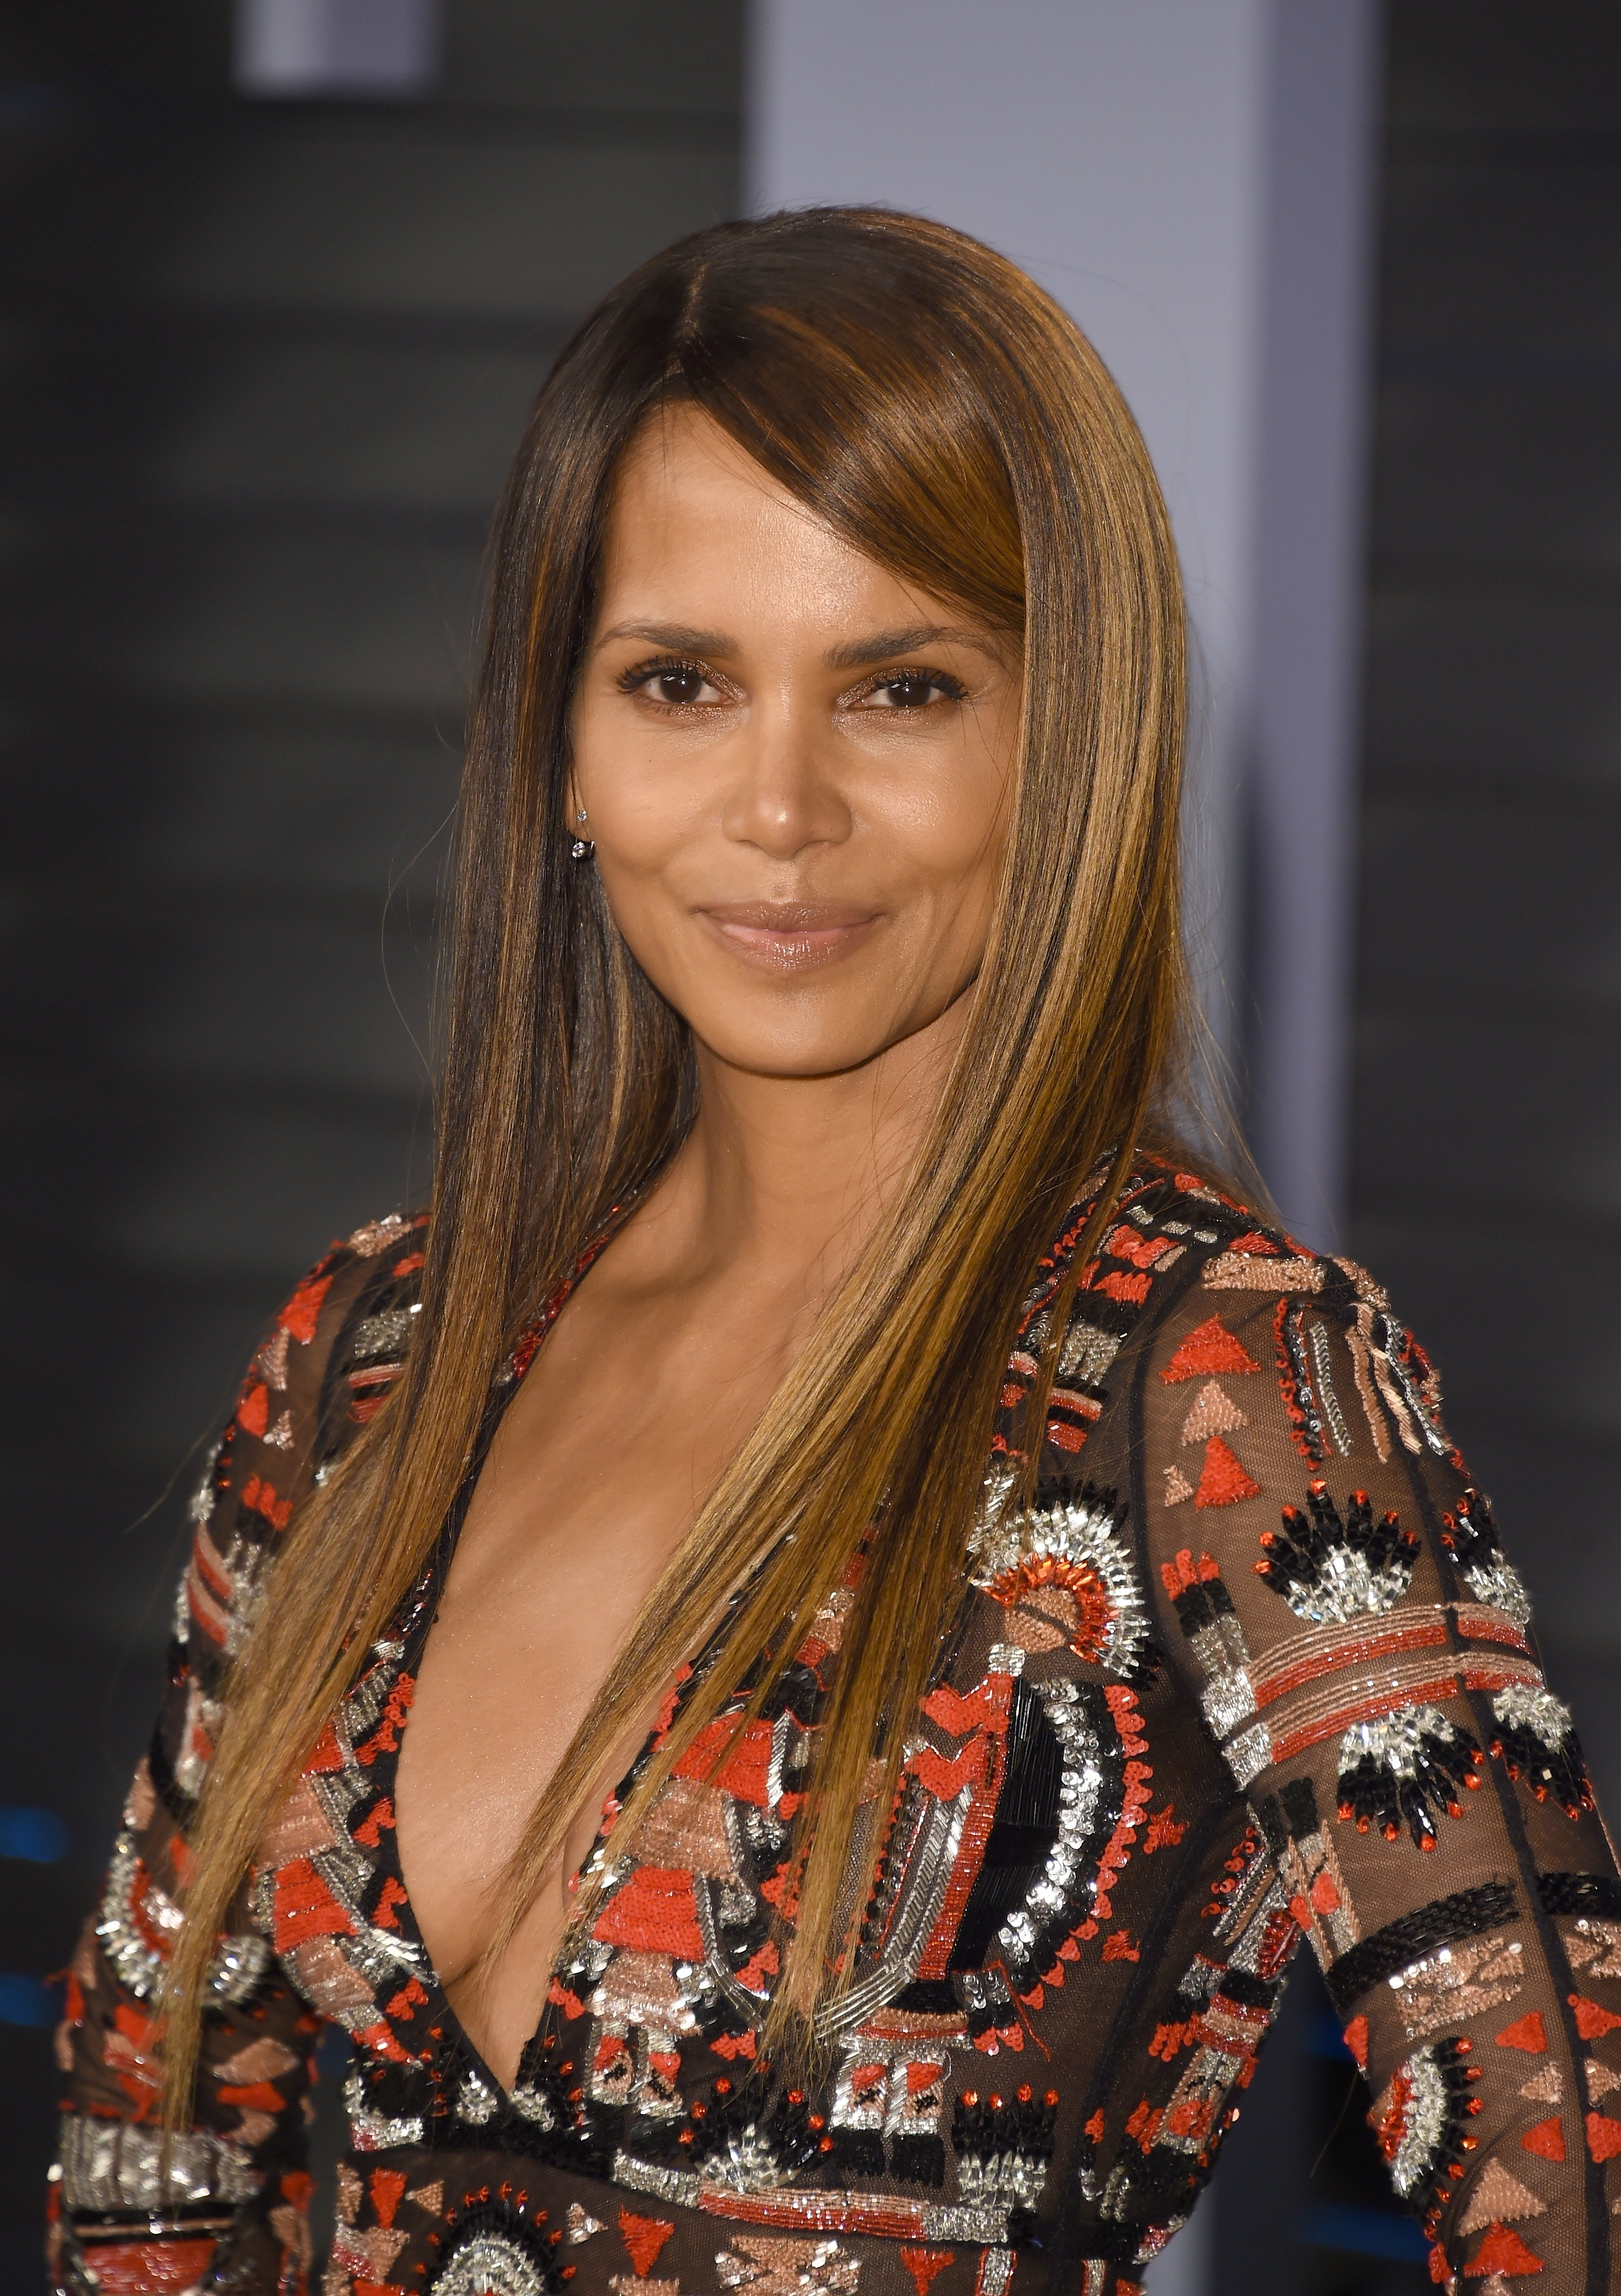 Halle Berry at the 2018 Vanity Fair Oscar Party in Beverly Hills, California   Source: Getty Images